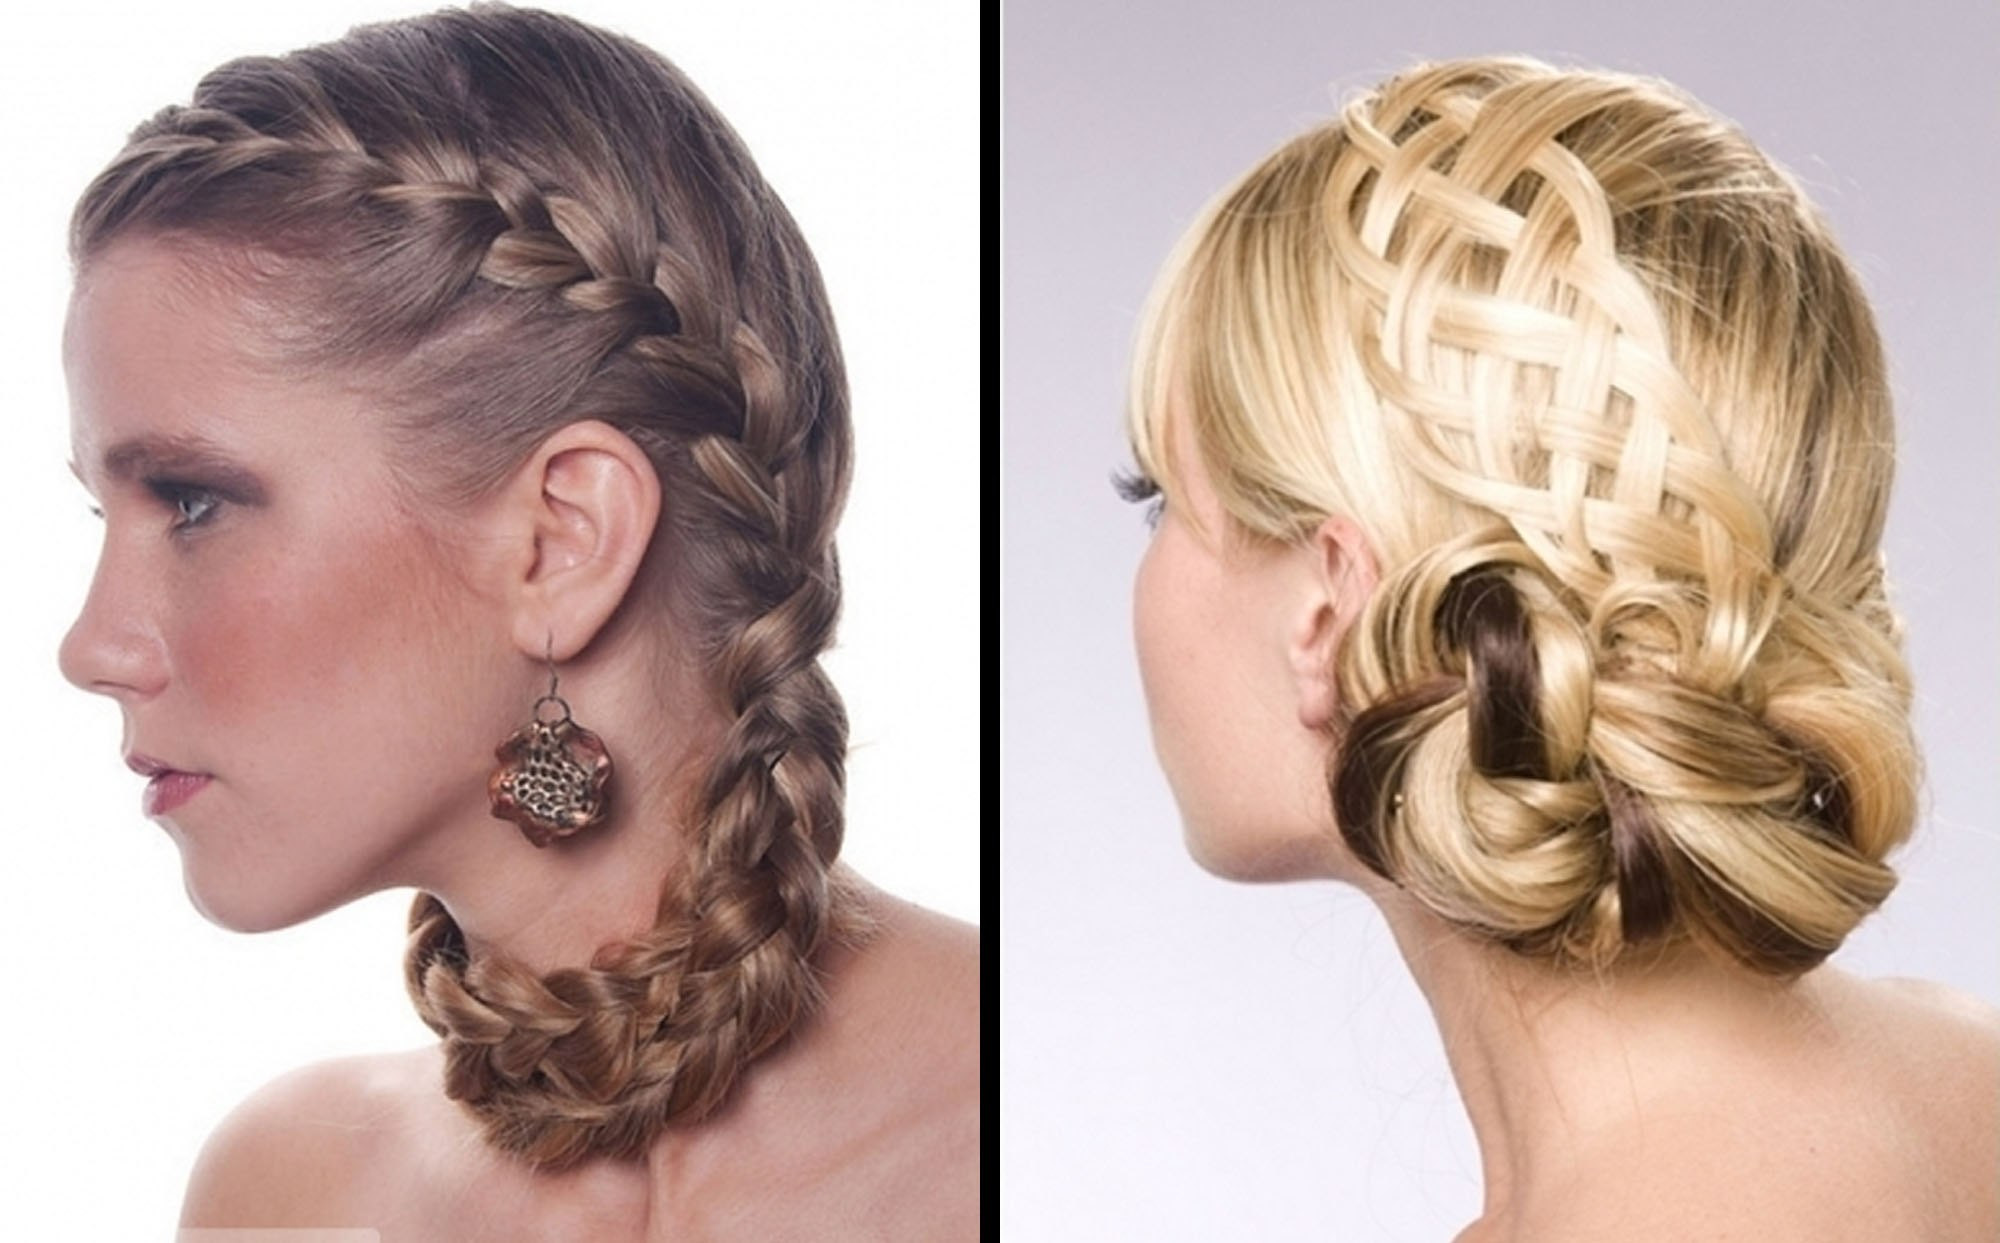 Best ideas about Shoulder Length Hairstyles For Prom . Save or Pin Easy prom hairstyles for medium length hair Hairstyle Now.